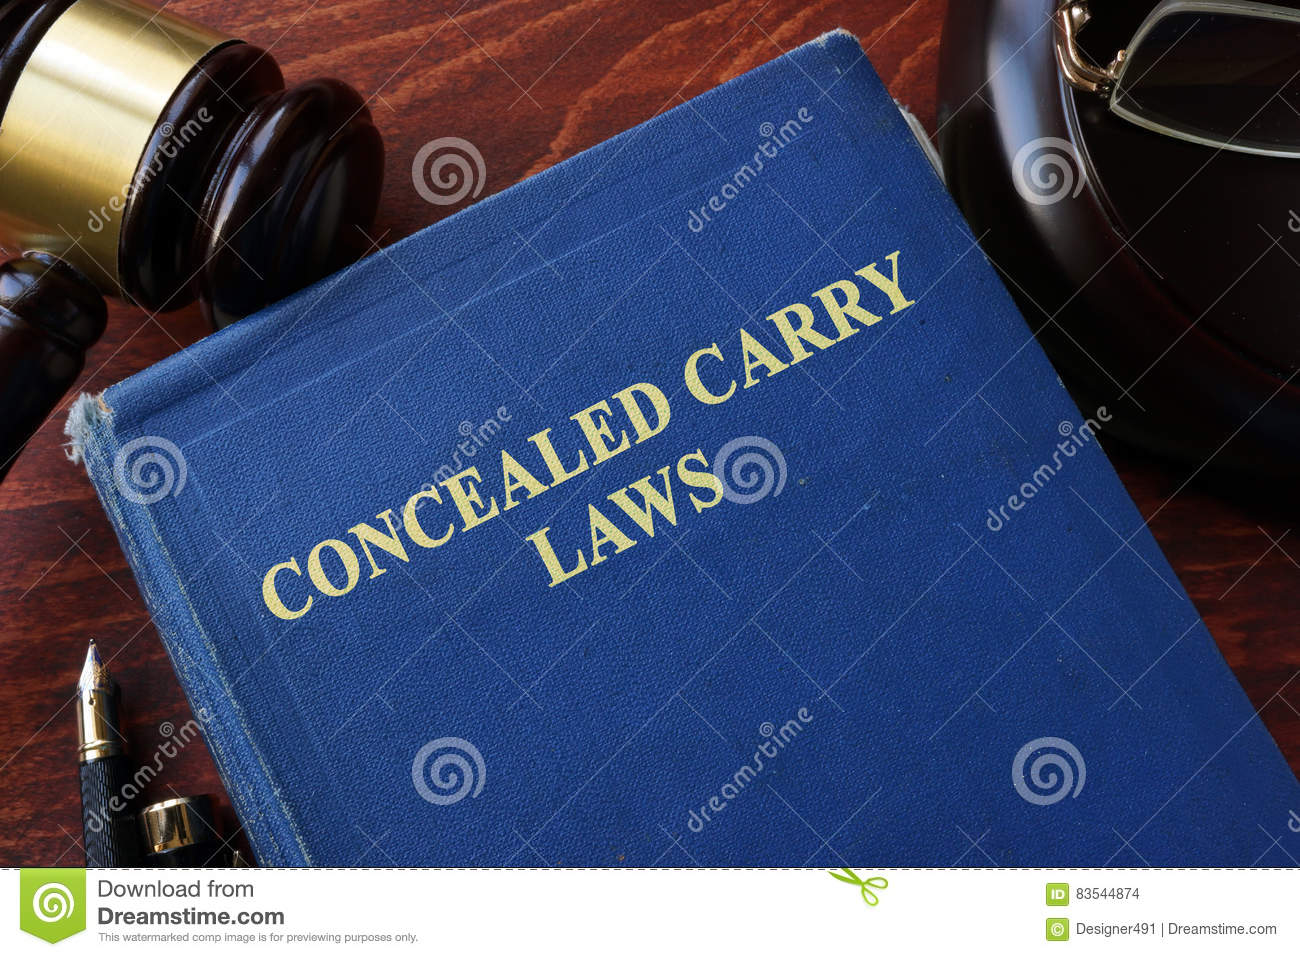 concealed carry laws debate Concealed carry permit information by state including each state's issuing status, concealed carry reciprocity with other states, permit and license examples as well as faq's including how to apply for a concealed carry permit, requirements, places off limits, renewal process and much more.